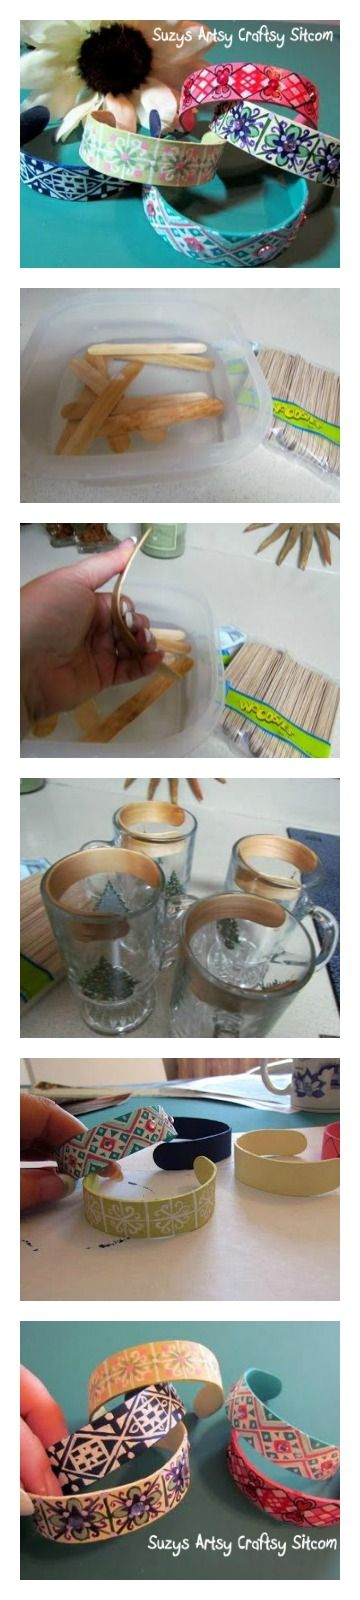 Bend popsicle sticks to make cute popsicle stick bracelets! Have to try with the girls